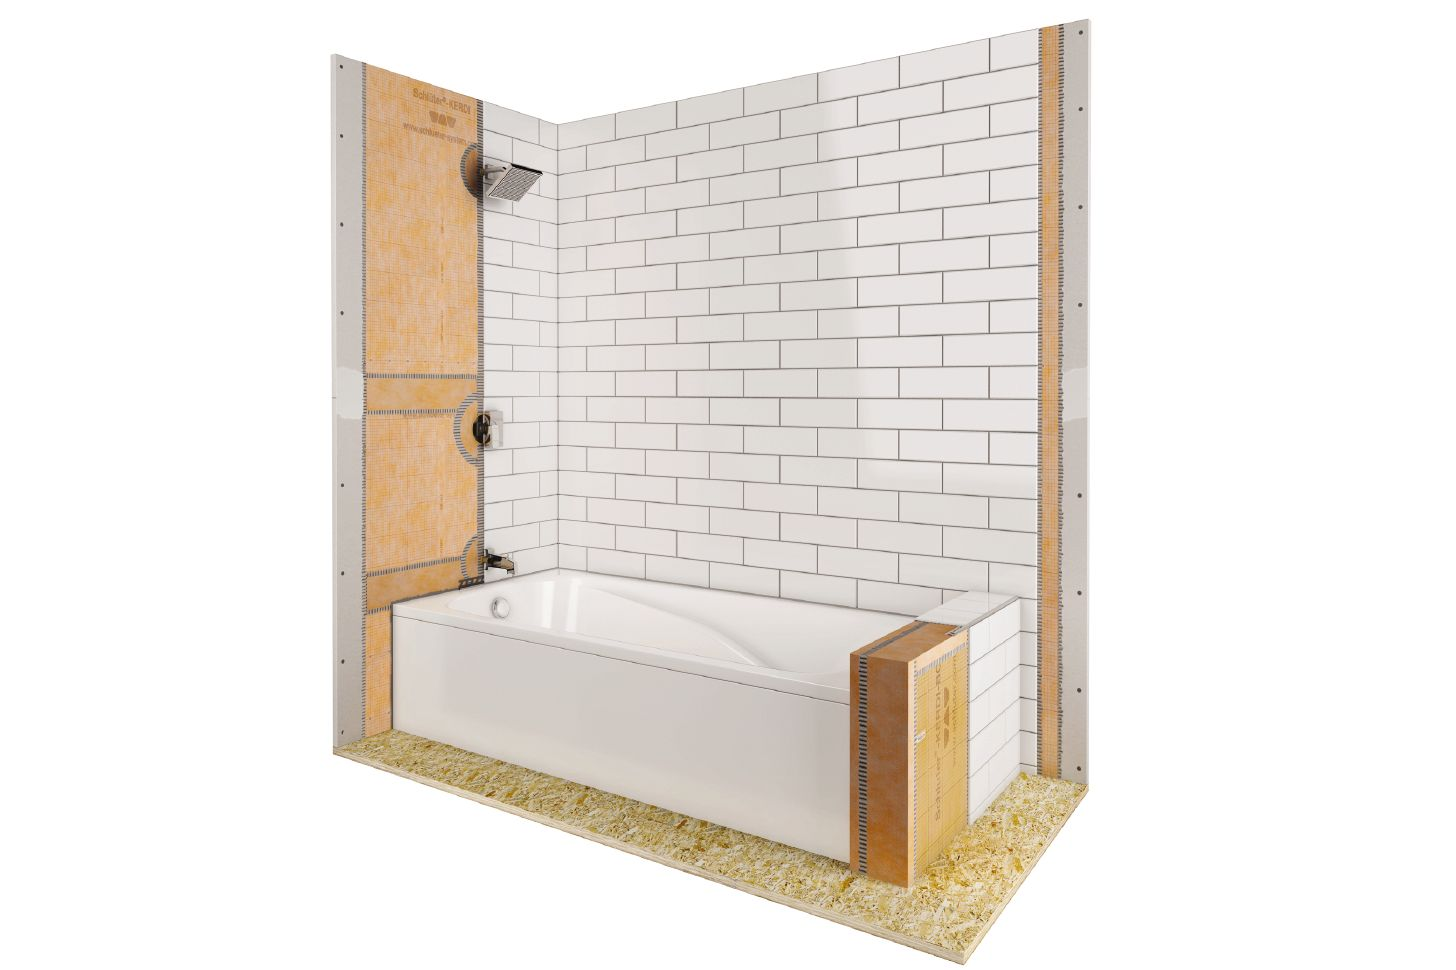 Shower with bathtub | schluter.com